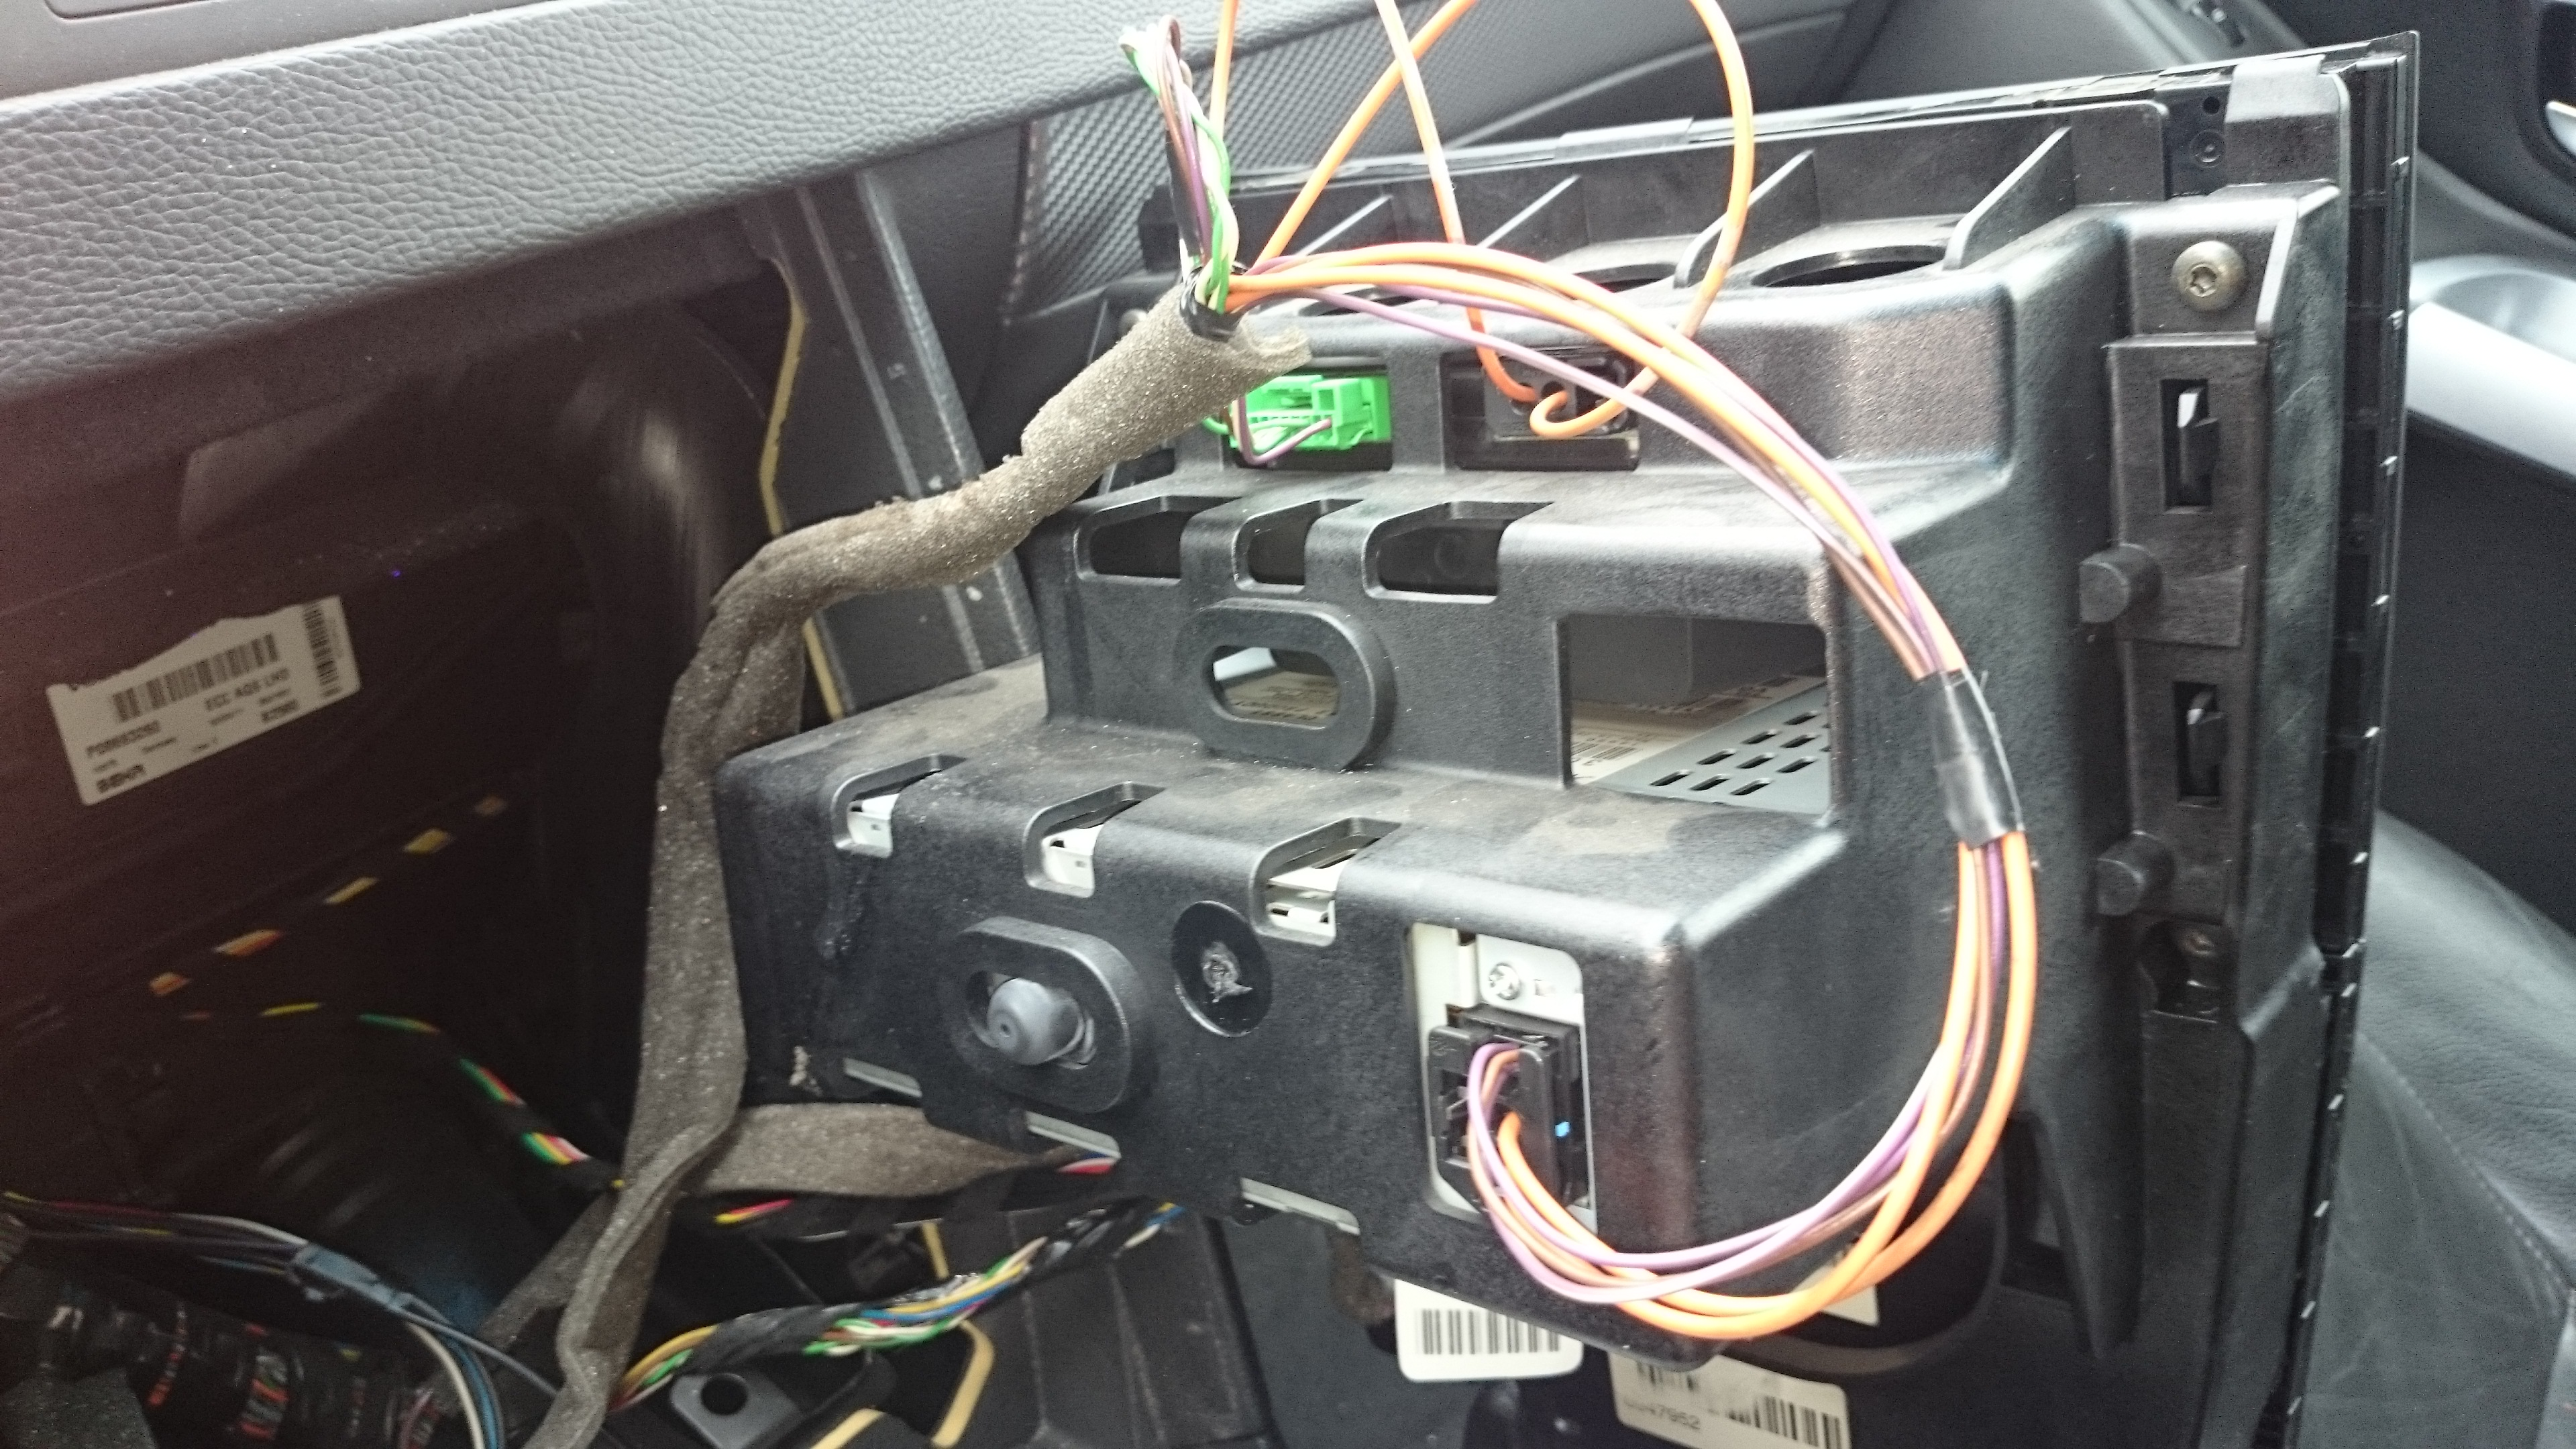 volvo xc90 audio wiring diagram led flasher relay what i exactly need from this site http incartec co uk